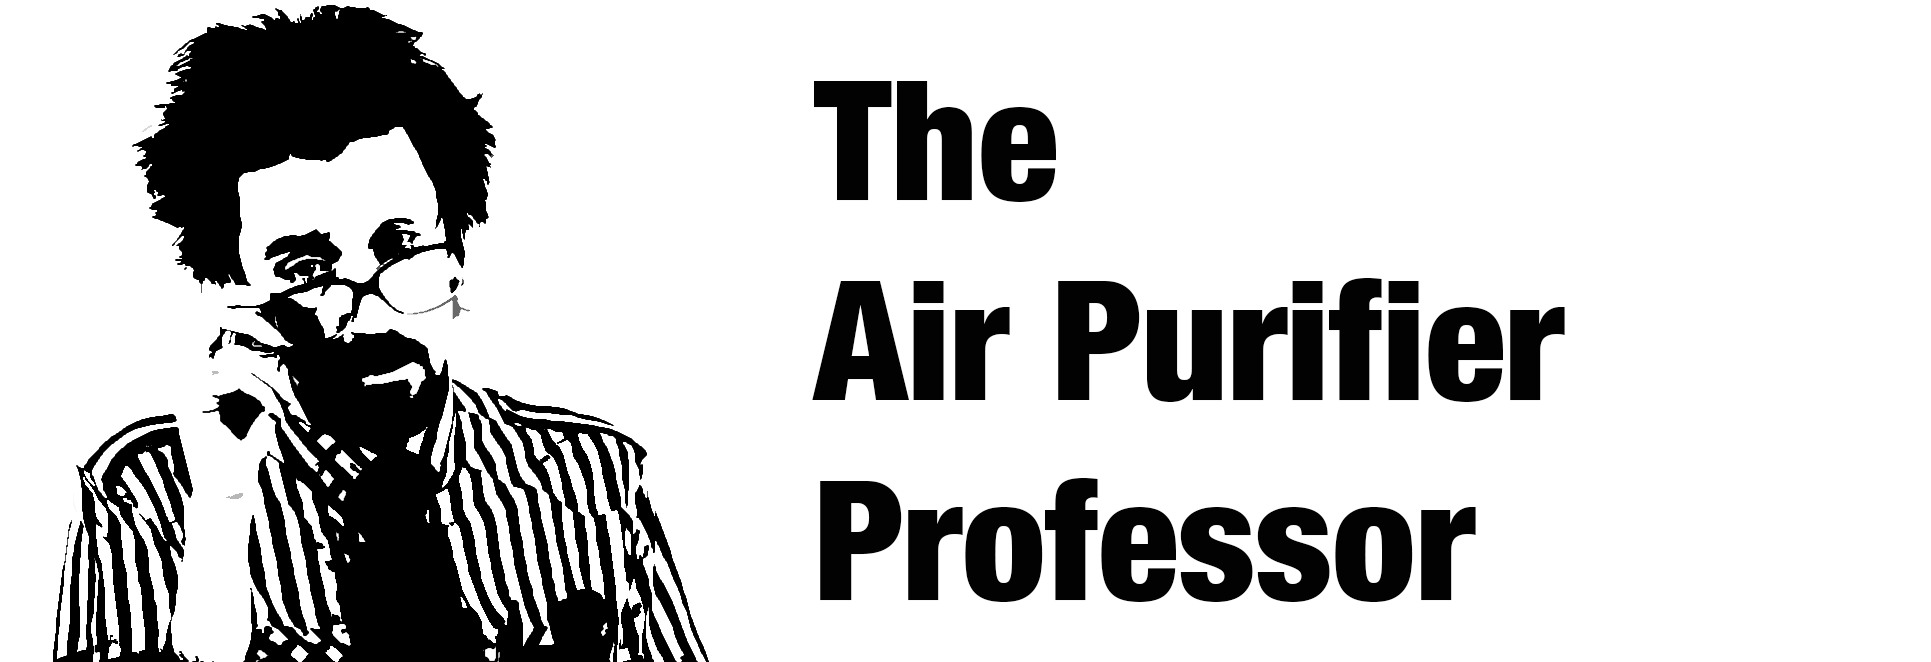 The Air Purifier Professor